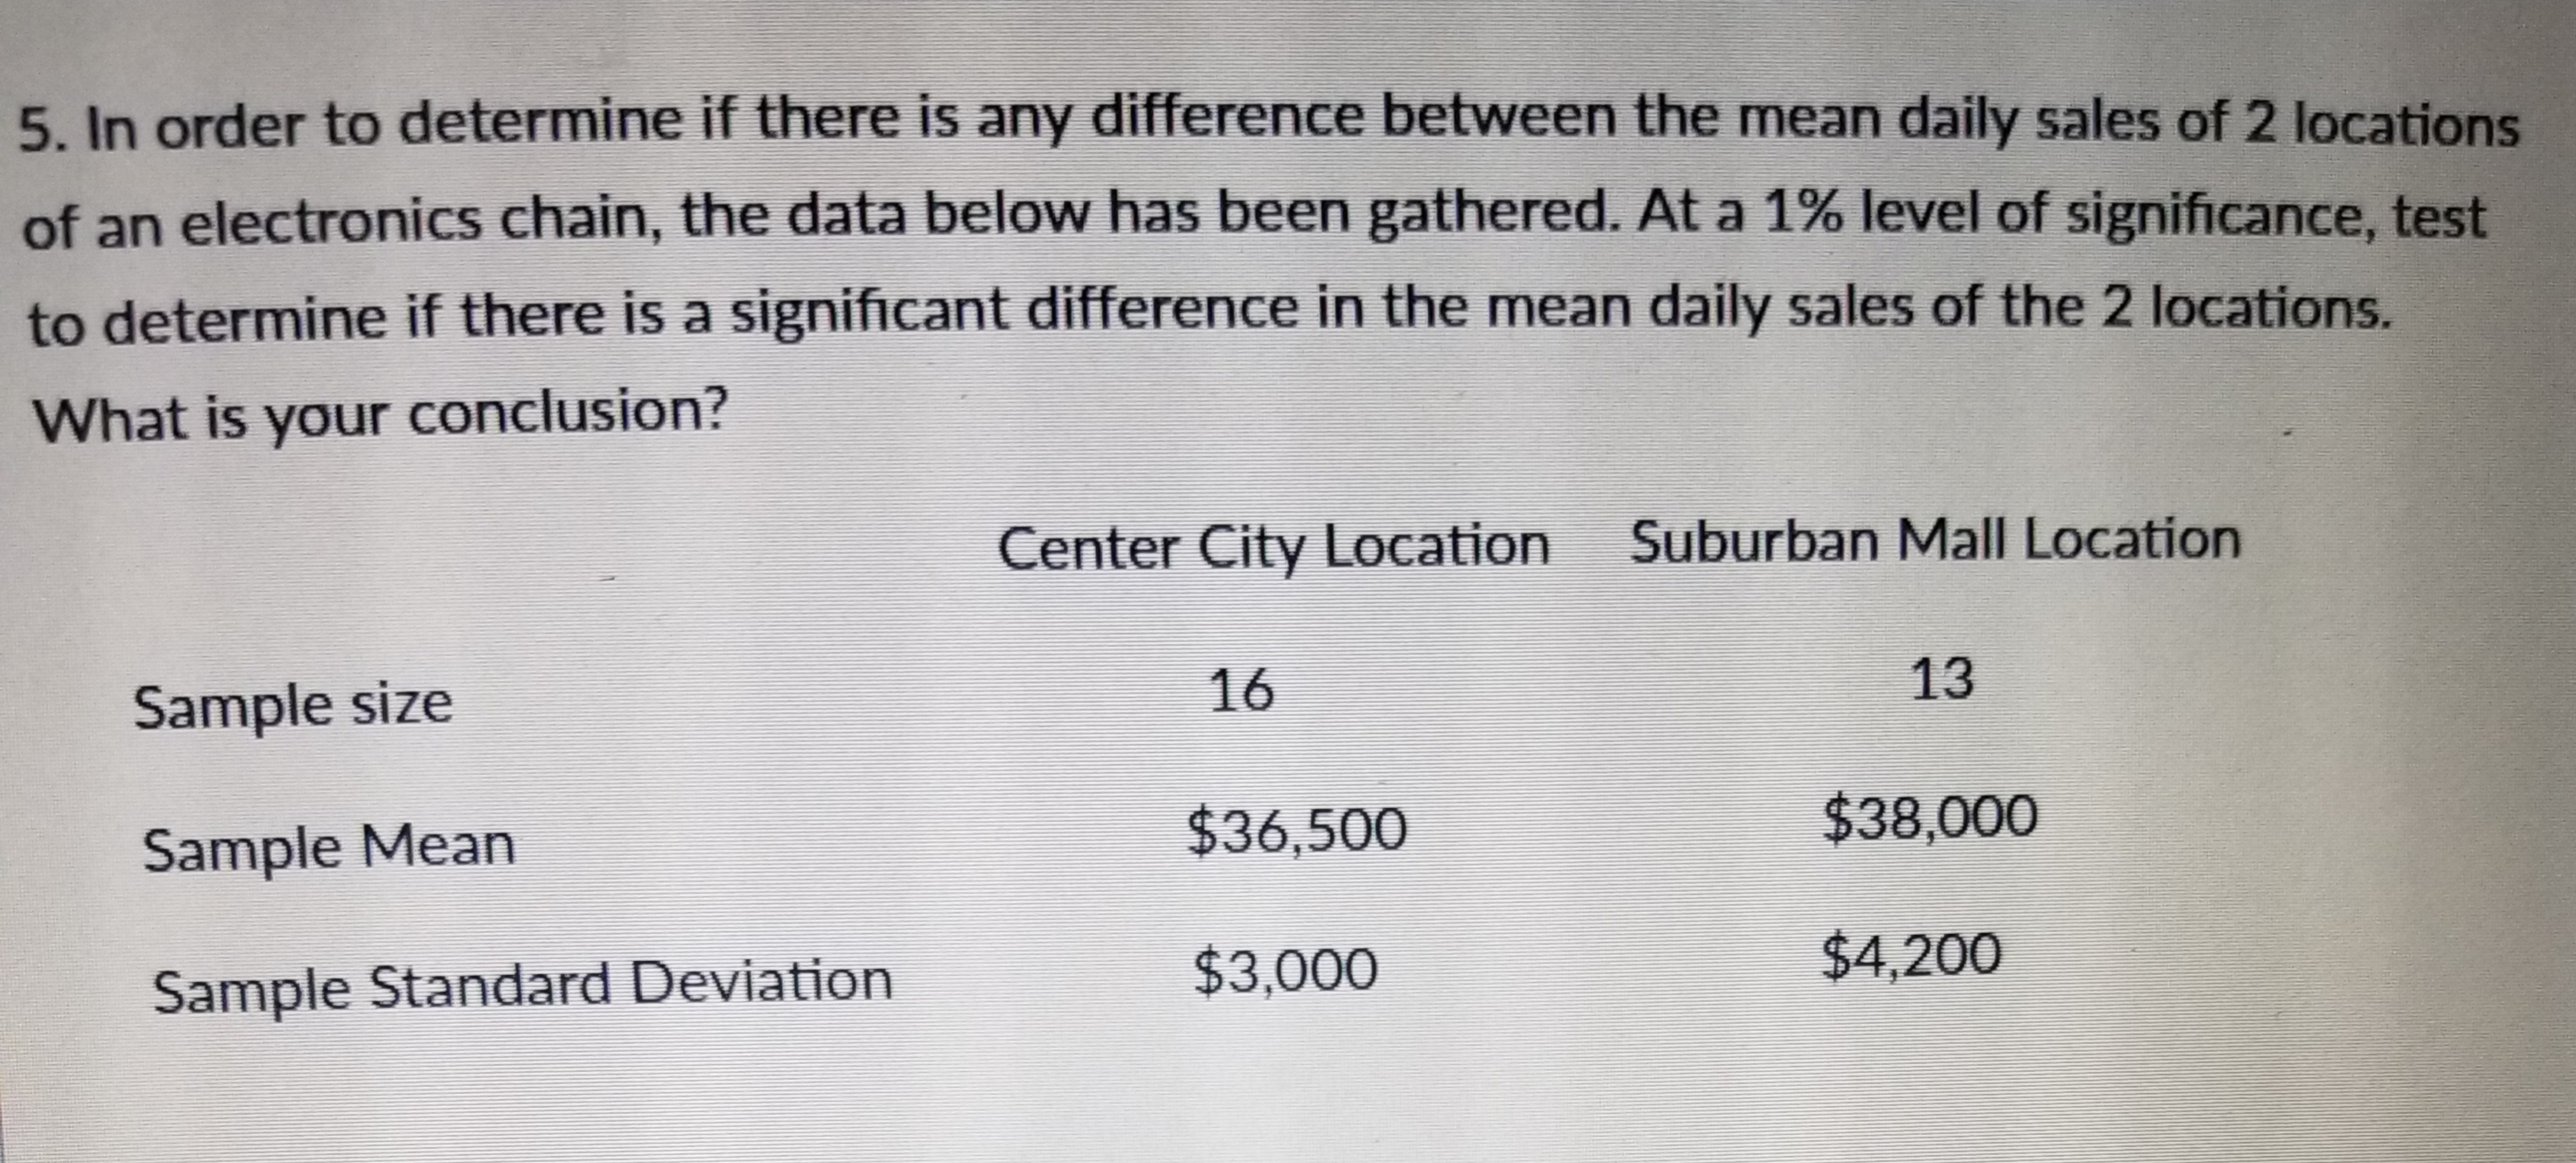 5. In order to determine if there is any difference between the mean daily sales of 2 locations of an electronics chain, the data below has been gathered. At a 1% level of significance, test to determine if there is a significant difference in the mean daily sales of the 2 locations. What is your conclusion? Center City Location Suburban Mall Location 13 $38,000 Sample size Sample Mean Sample Standard Deviation 16 $36,500 $3,000 $4,200